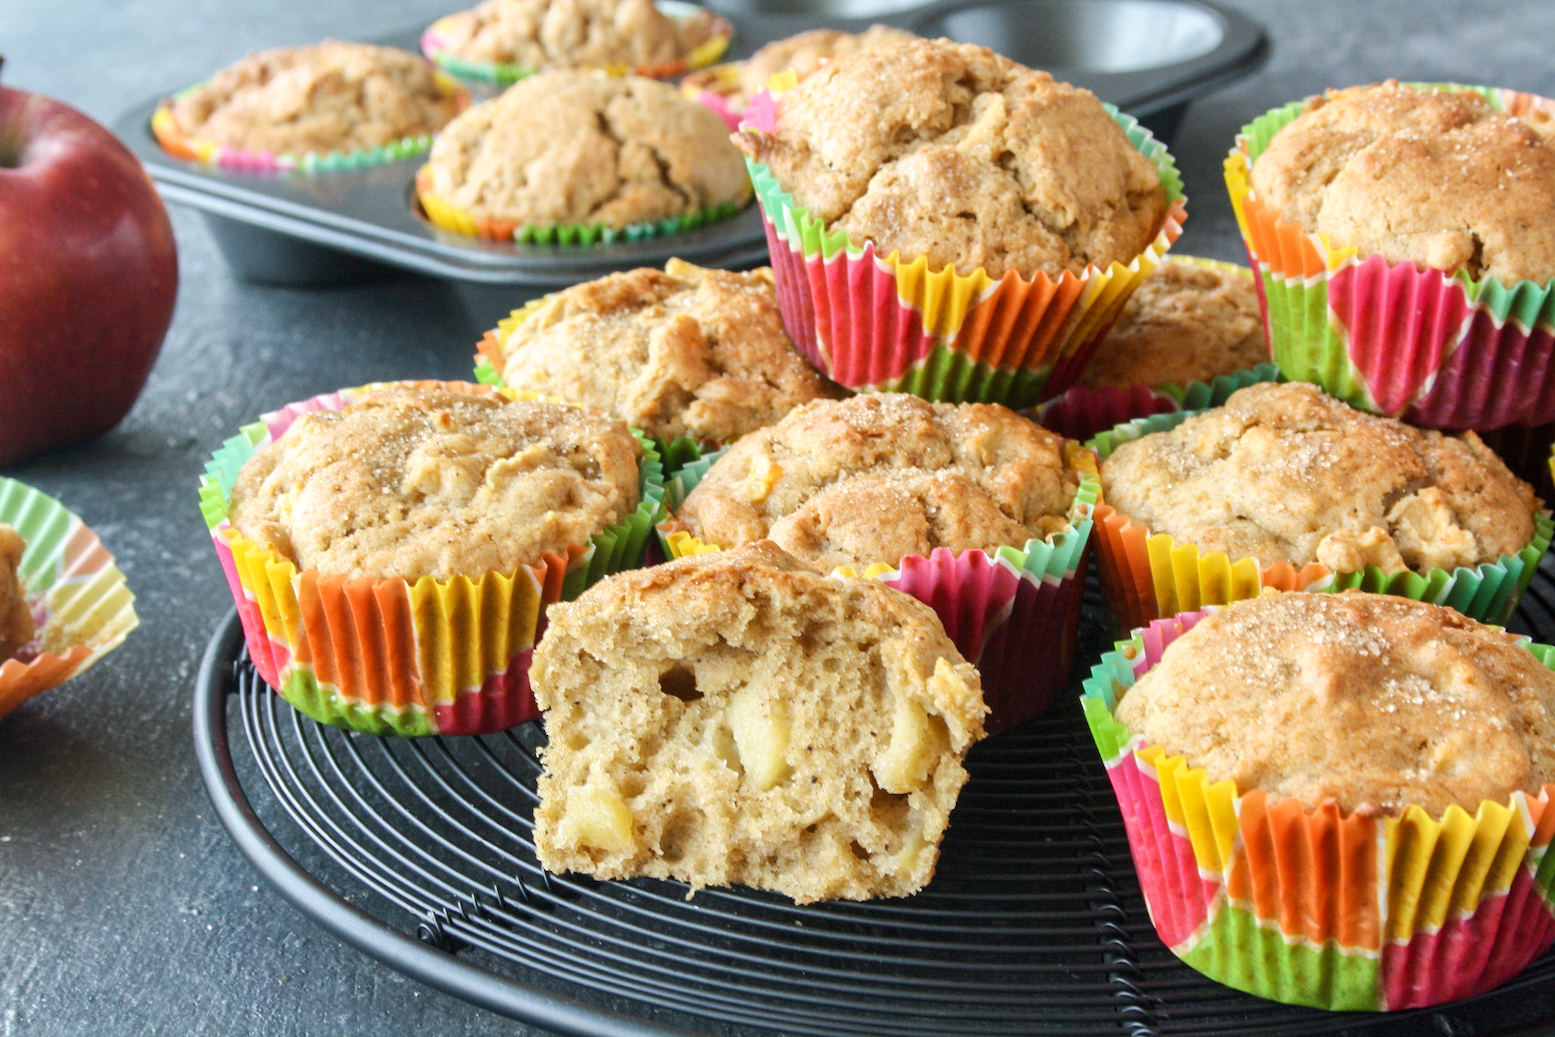 Super soft muffins with fresh apples and cinnamon